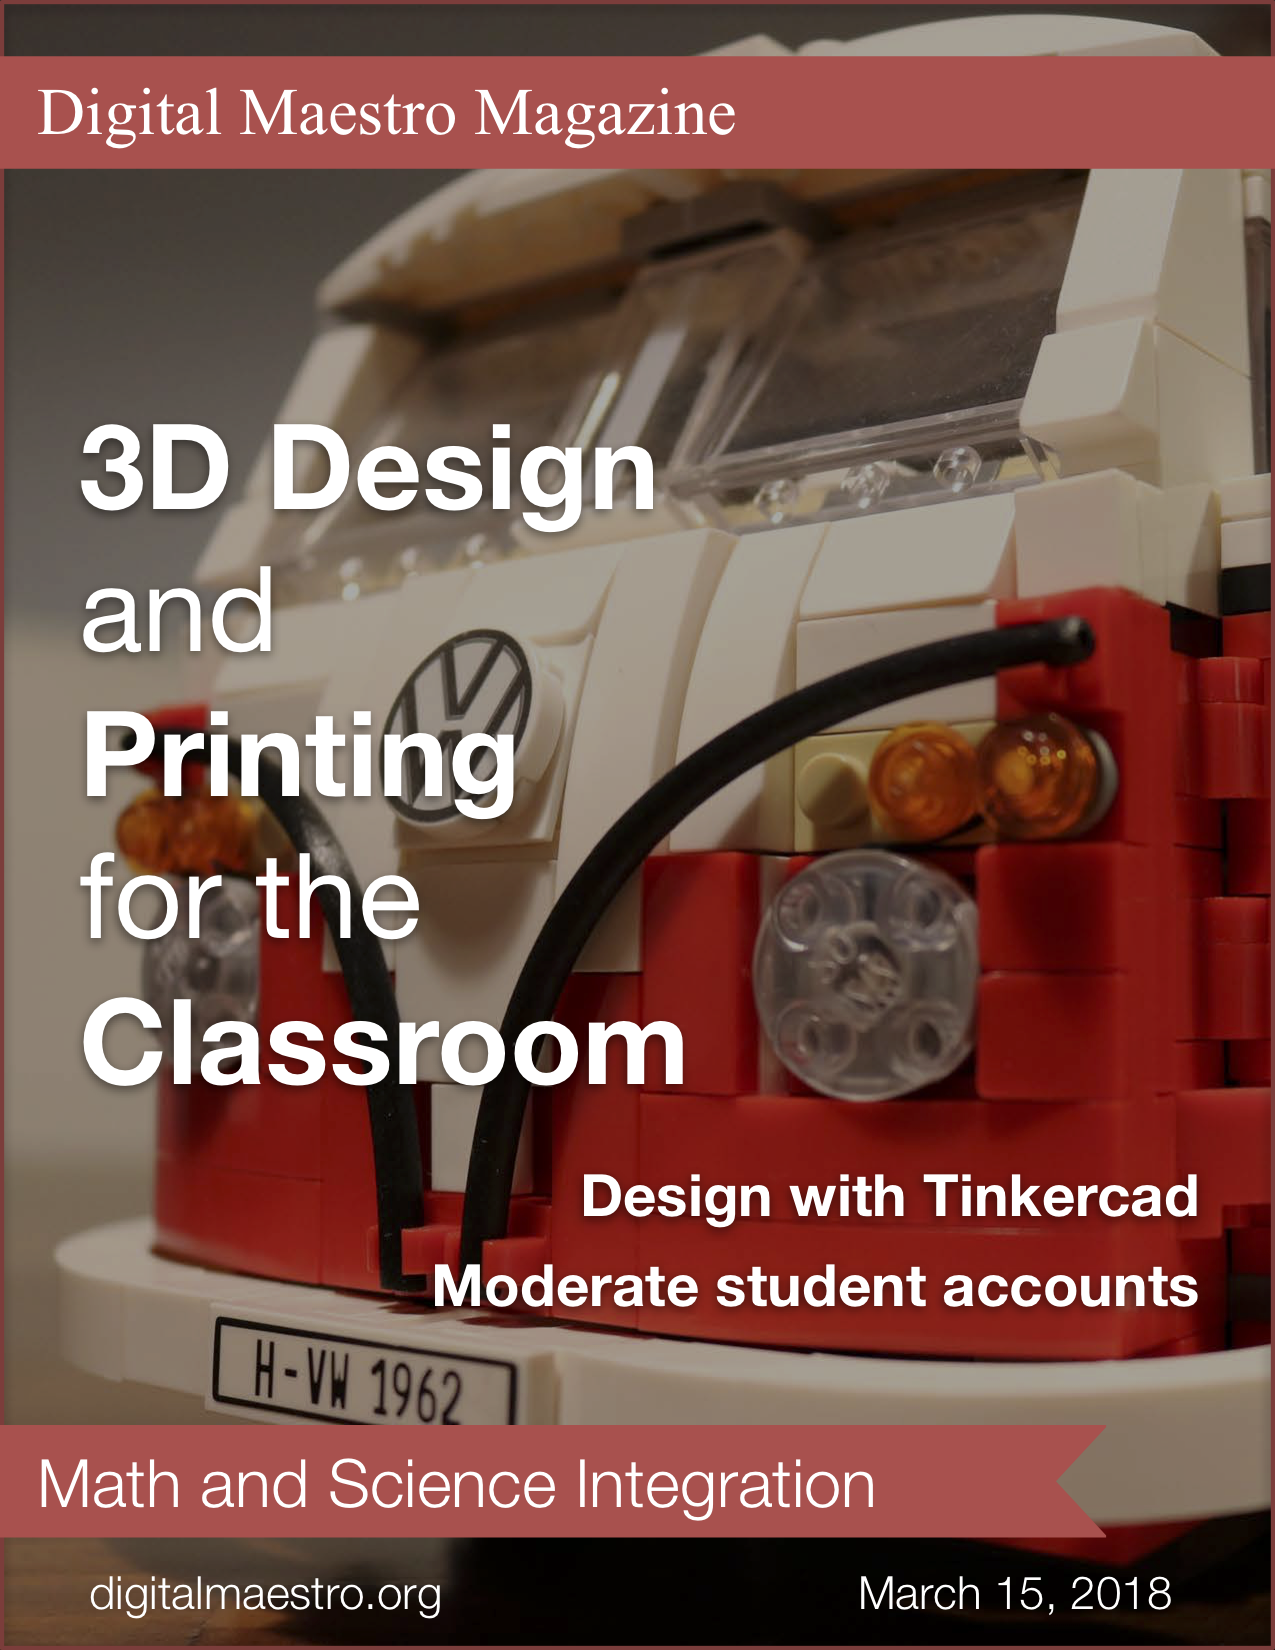 3D design and printing in the classroom - Use TinkerCAD to design models. Design models that teach math and science concepts.